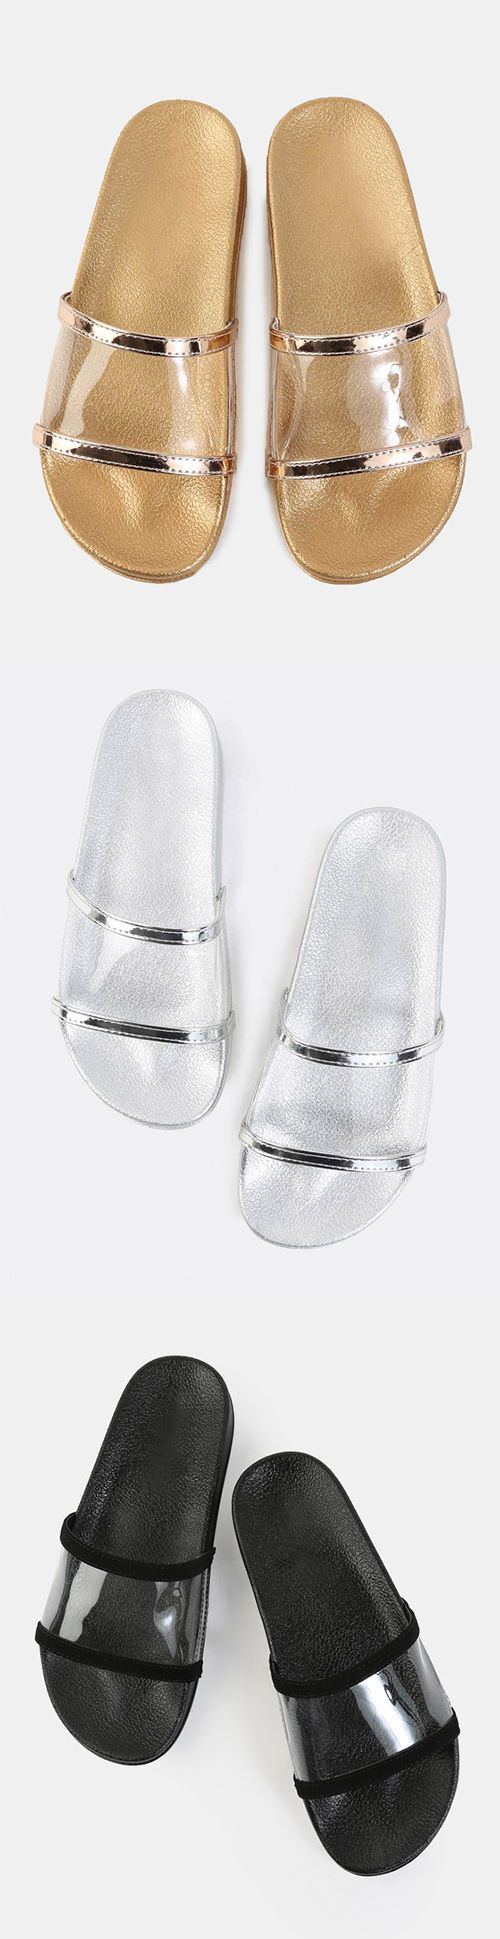 Open Toe Lined Slide Sandals BLACK